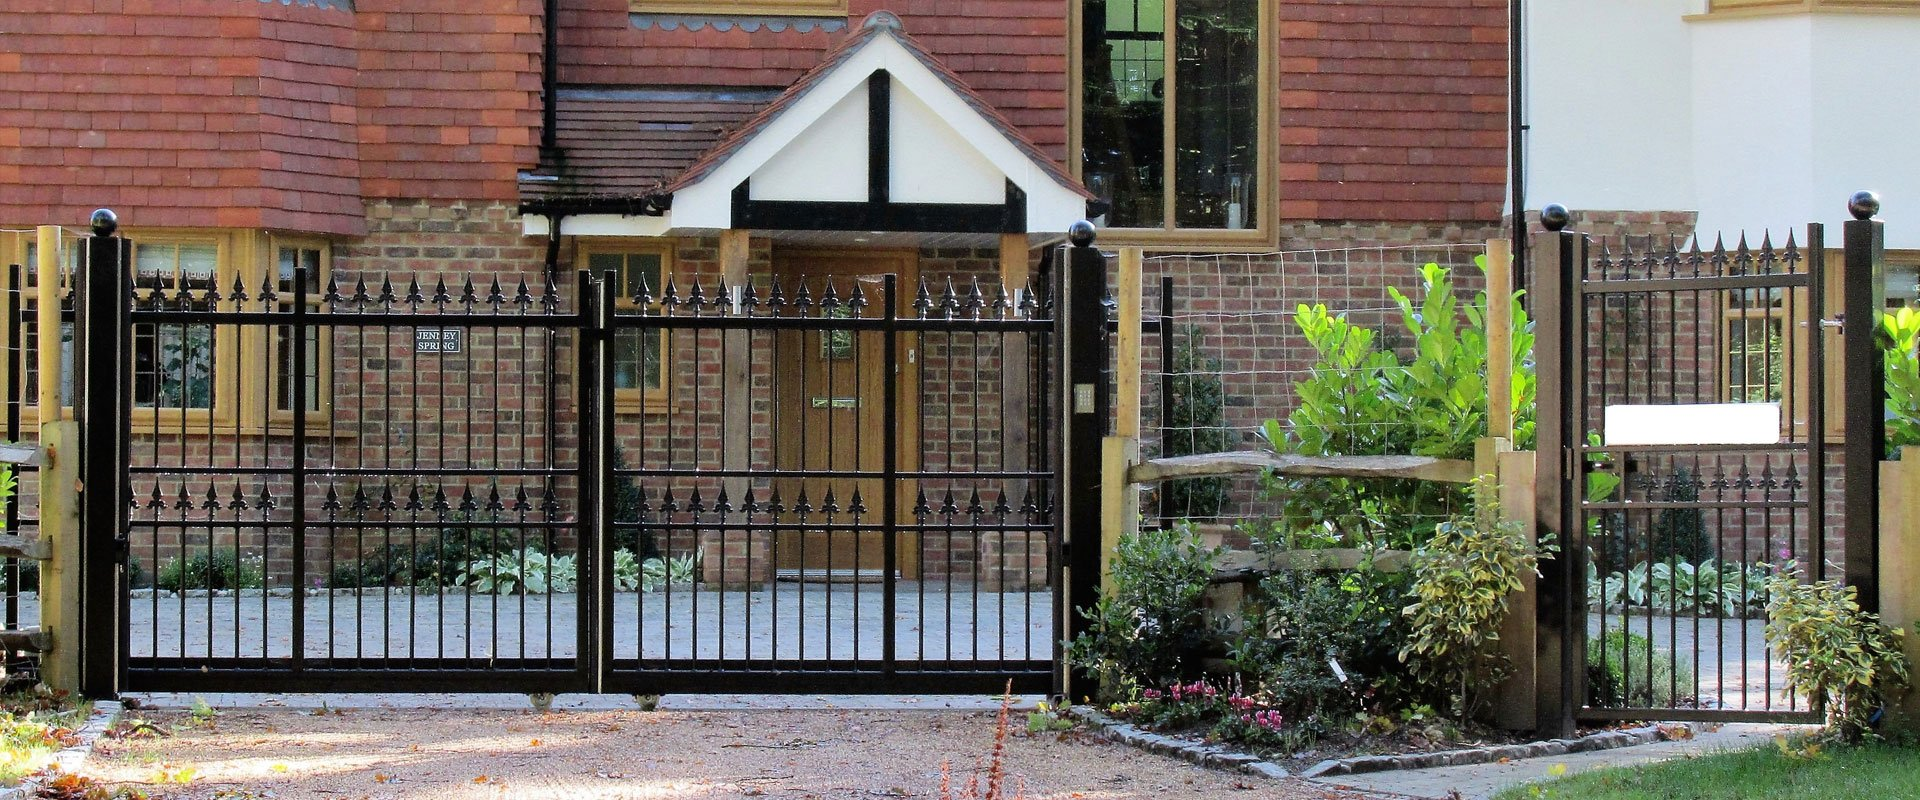 detailed black metal gate infront of brick house